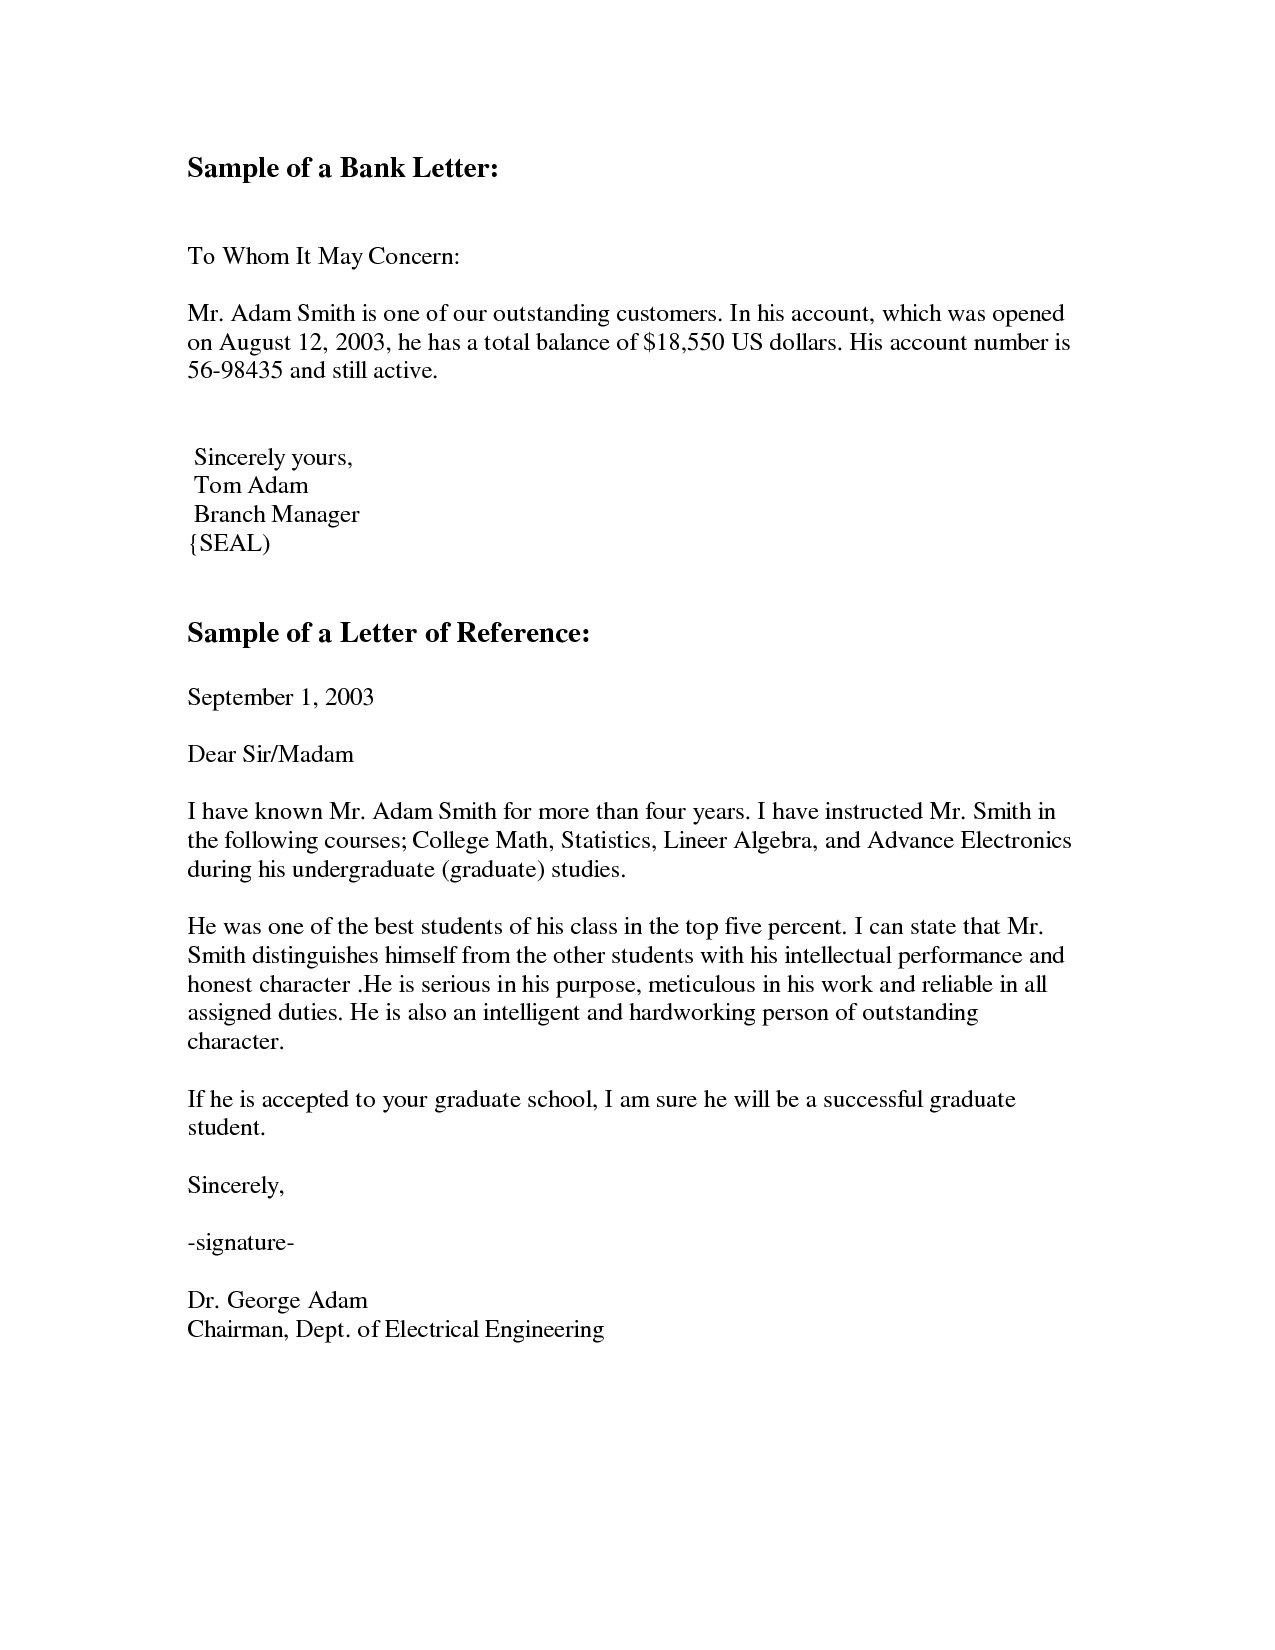 Trustee resignation letter template images letter format formal sample trustee resignation letter gallery letter international essay letter to apply job refrence ficial letter format to spiritdancerdesigns Image collections